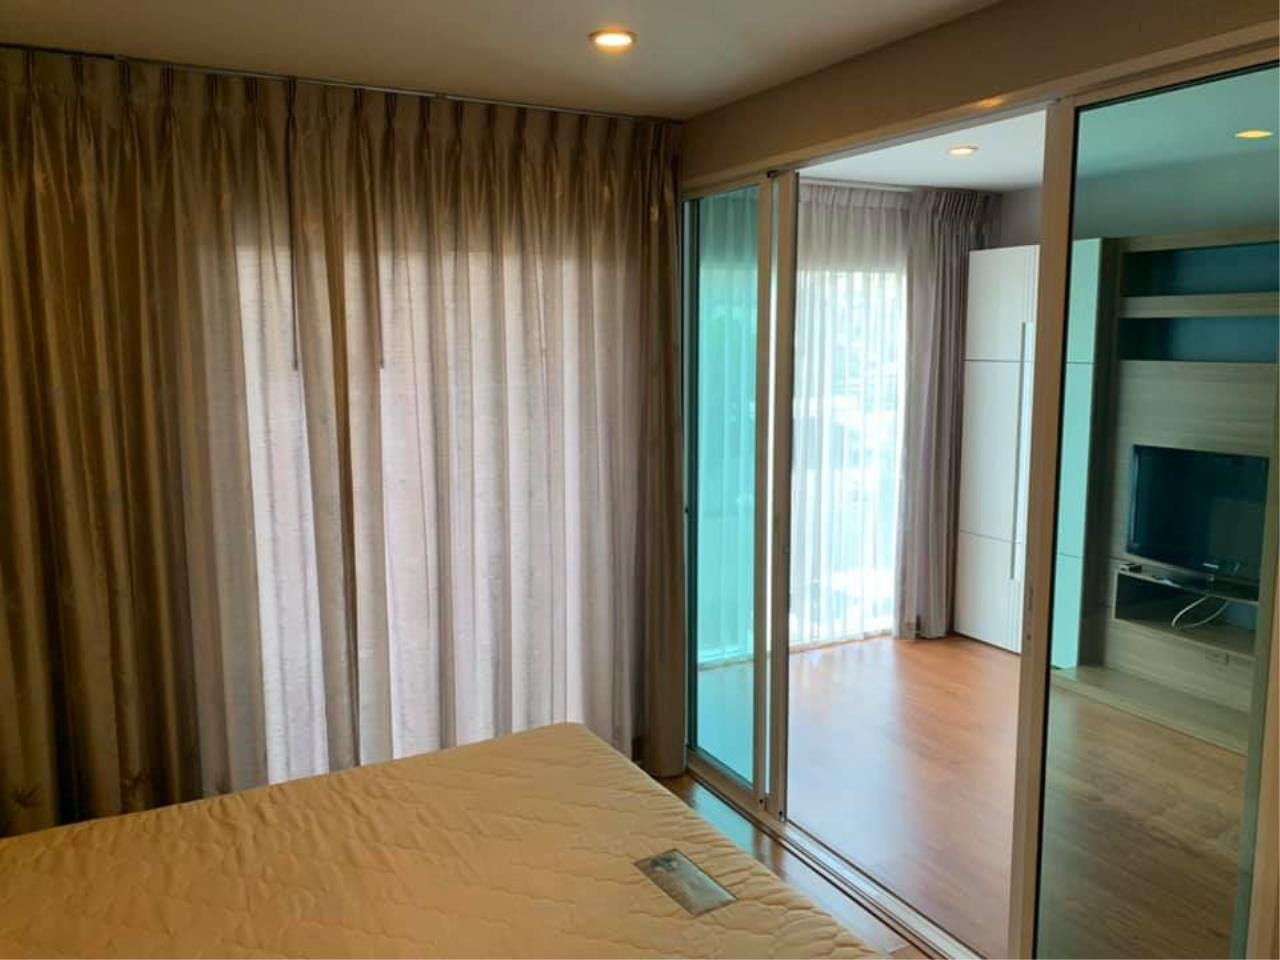 Agent Thawanrat Agency's Condo for rental TOURMALINE GOLD SATHORN – TAKSIN Near BTS.Krung Thon Buri. 1 bedroom,1 bathroom. size 40 sqm.Floor 10 th. fully furnished Ready to move in 7